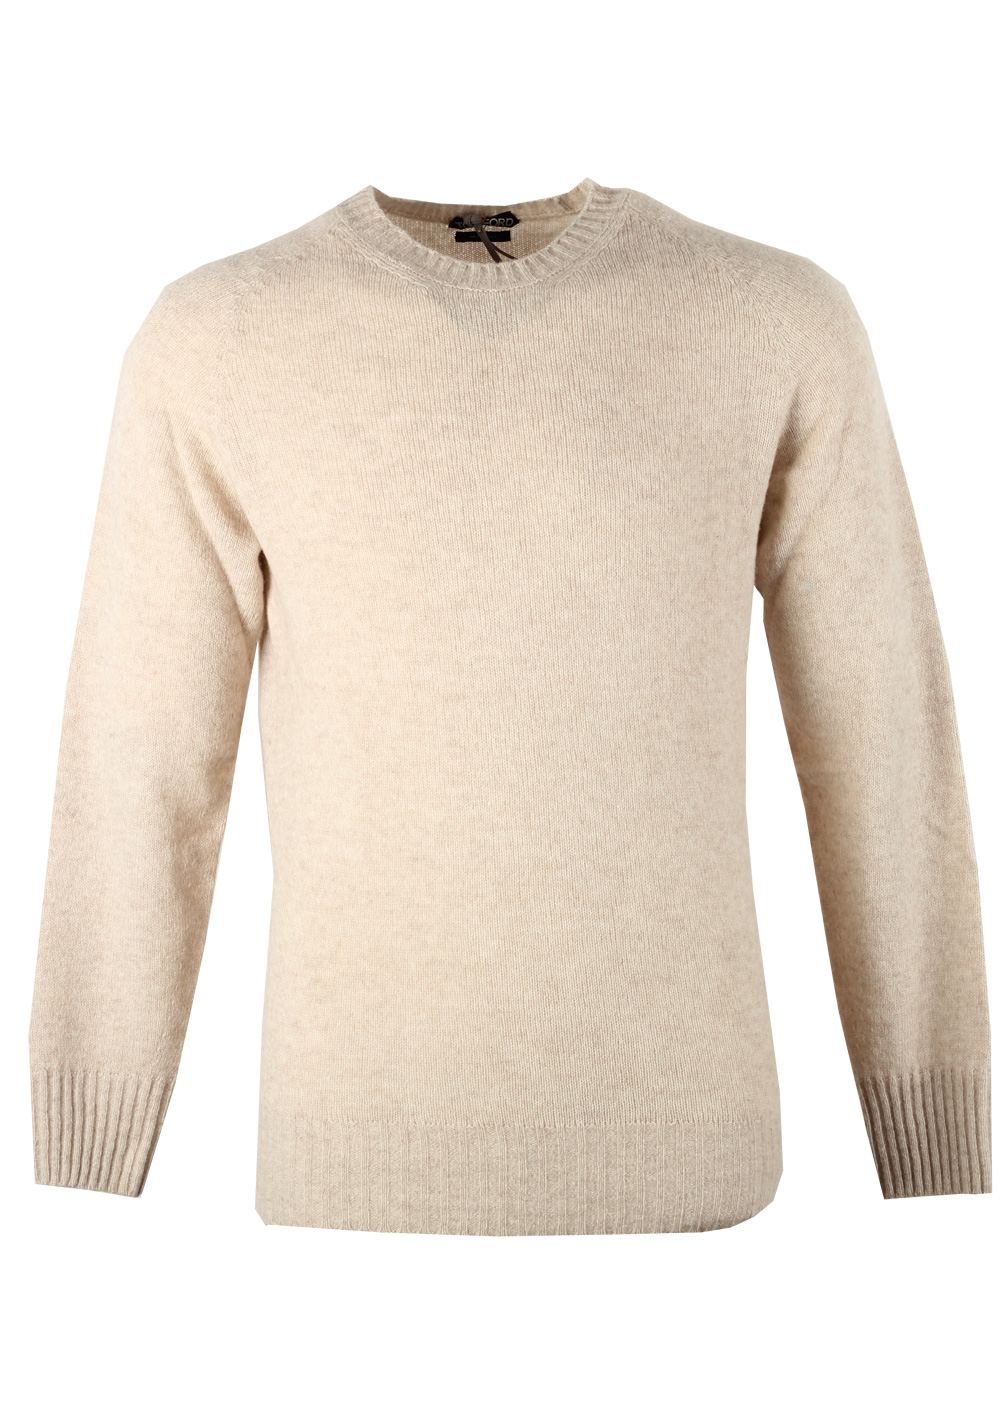 TOM FORD Beige Crew Neck Sweater Size 48 / 38R U.S. In Cashmere Blend | Costume Limité